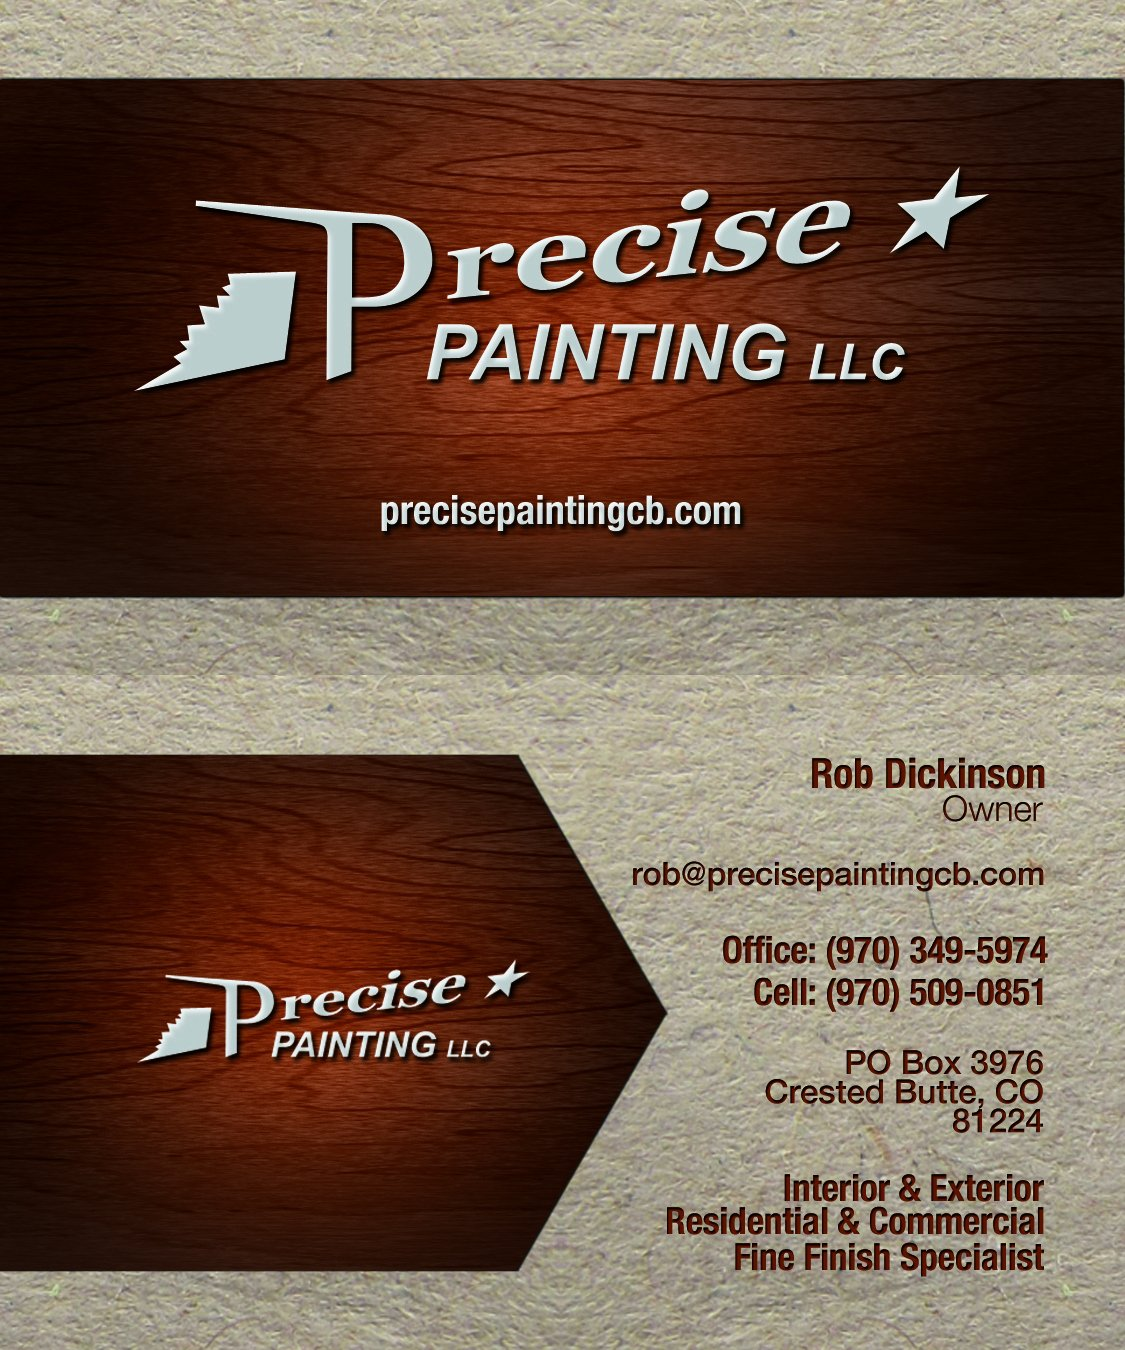 Business Cards for Painters Lovely Free Templates for Business Cards to Print at Home